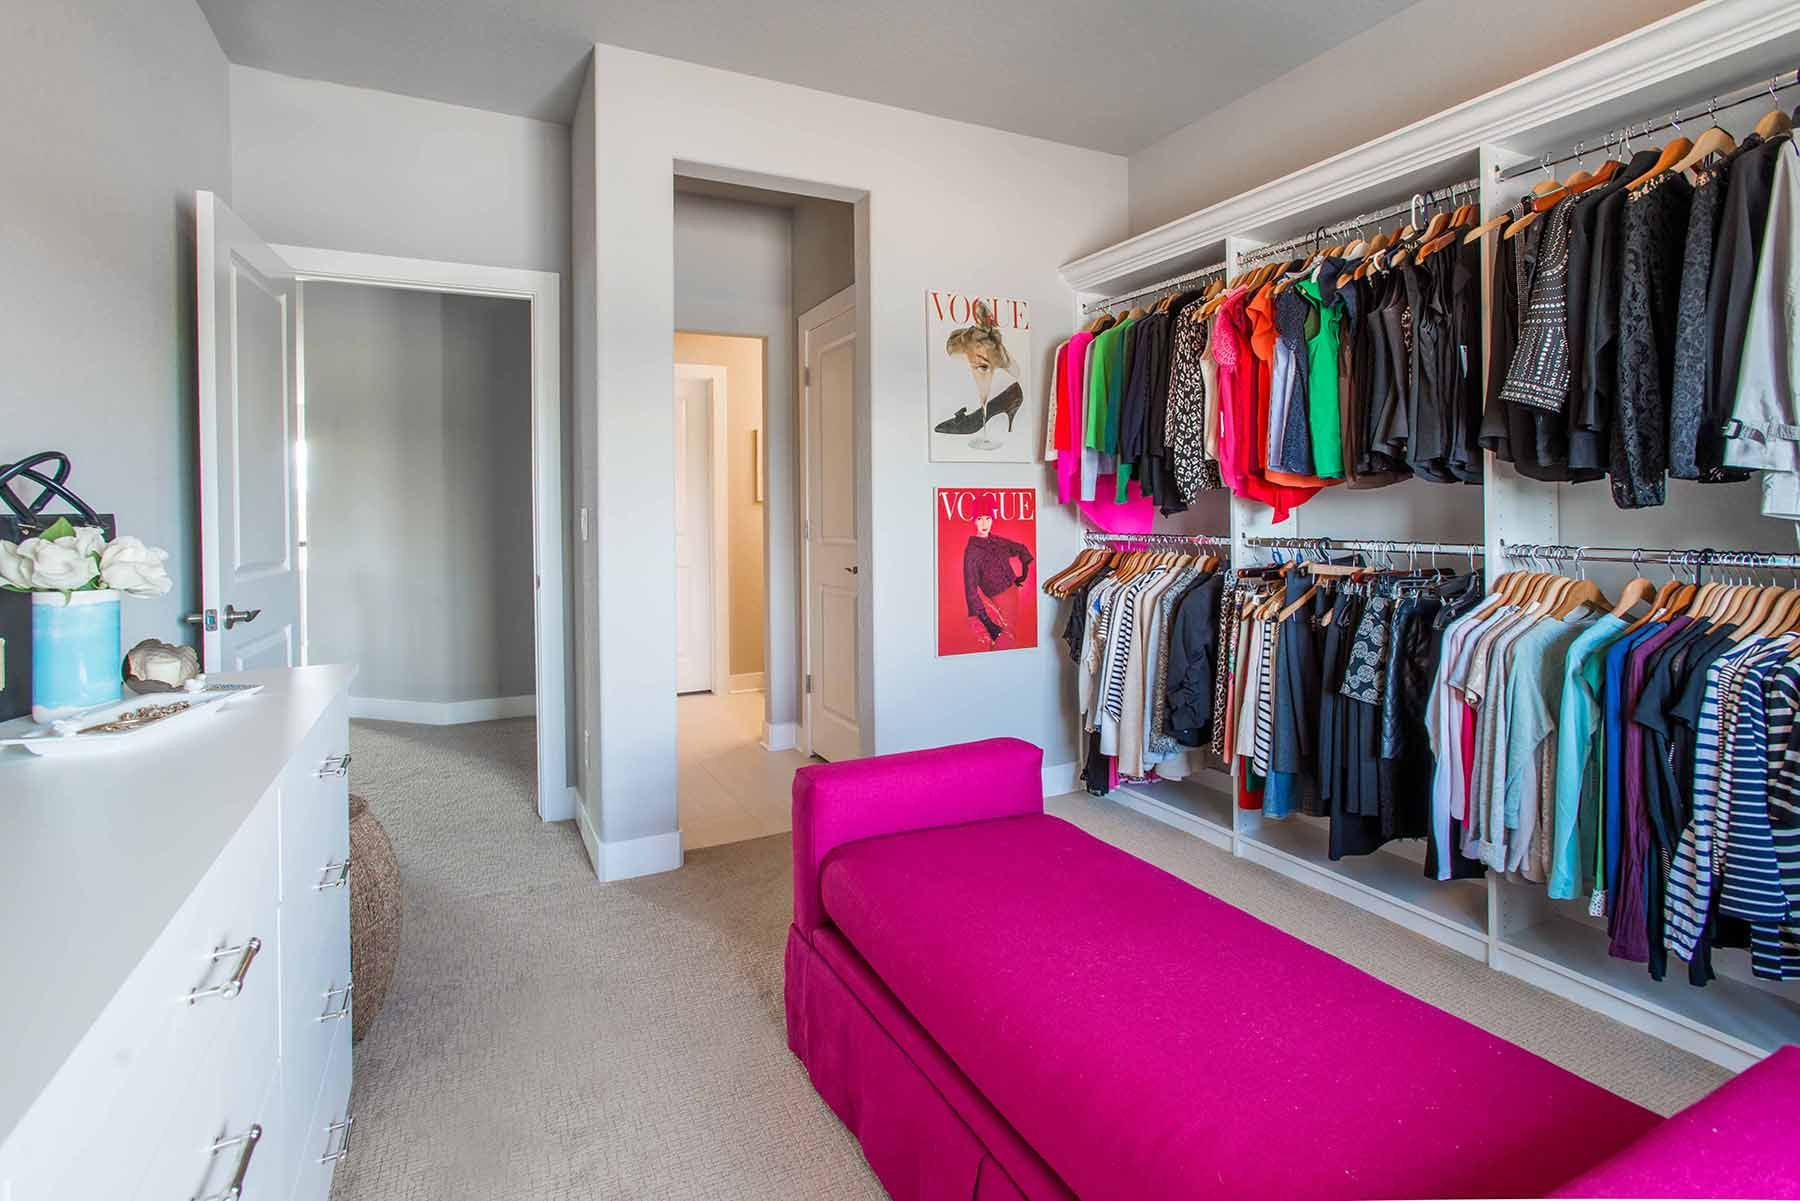 A Extra Spare Bedroom In Your Home Can Be Transformed Into A Beautiful Dressing Room Like This